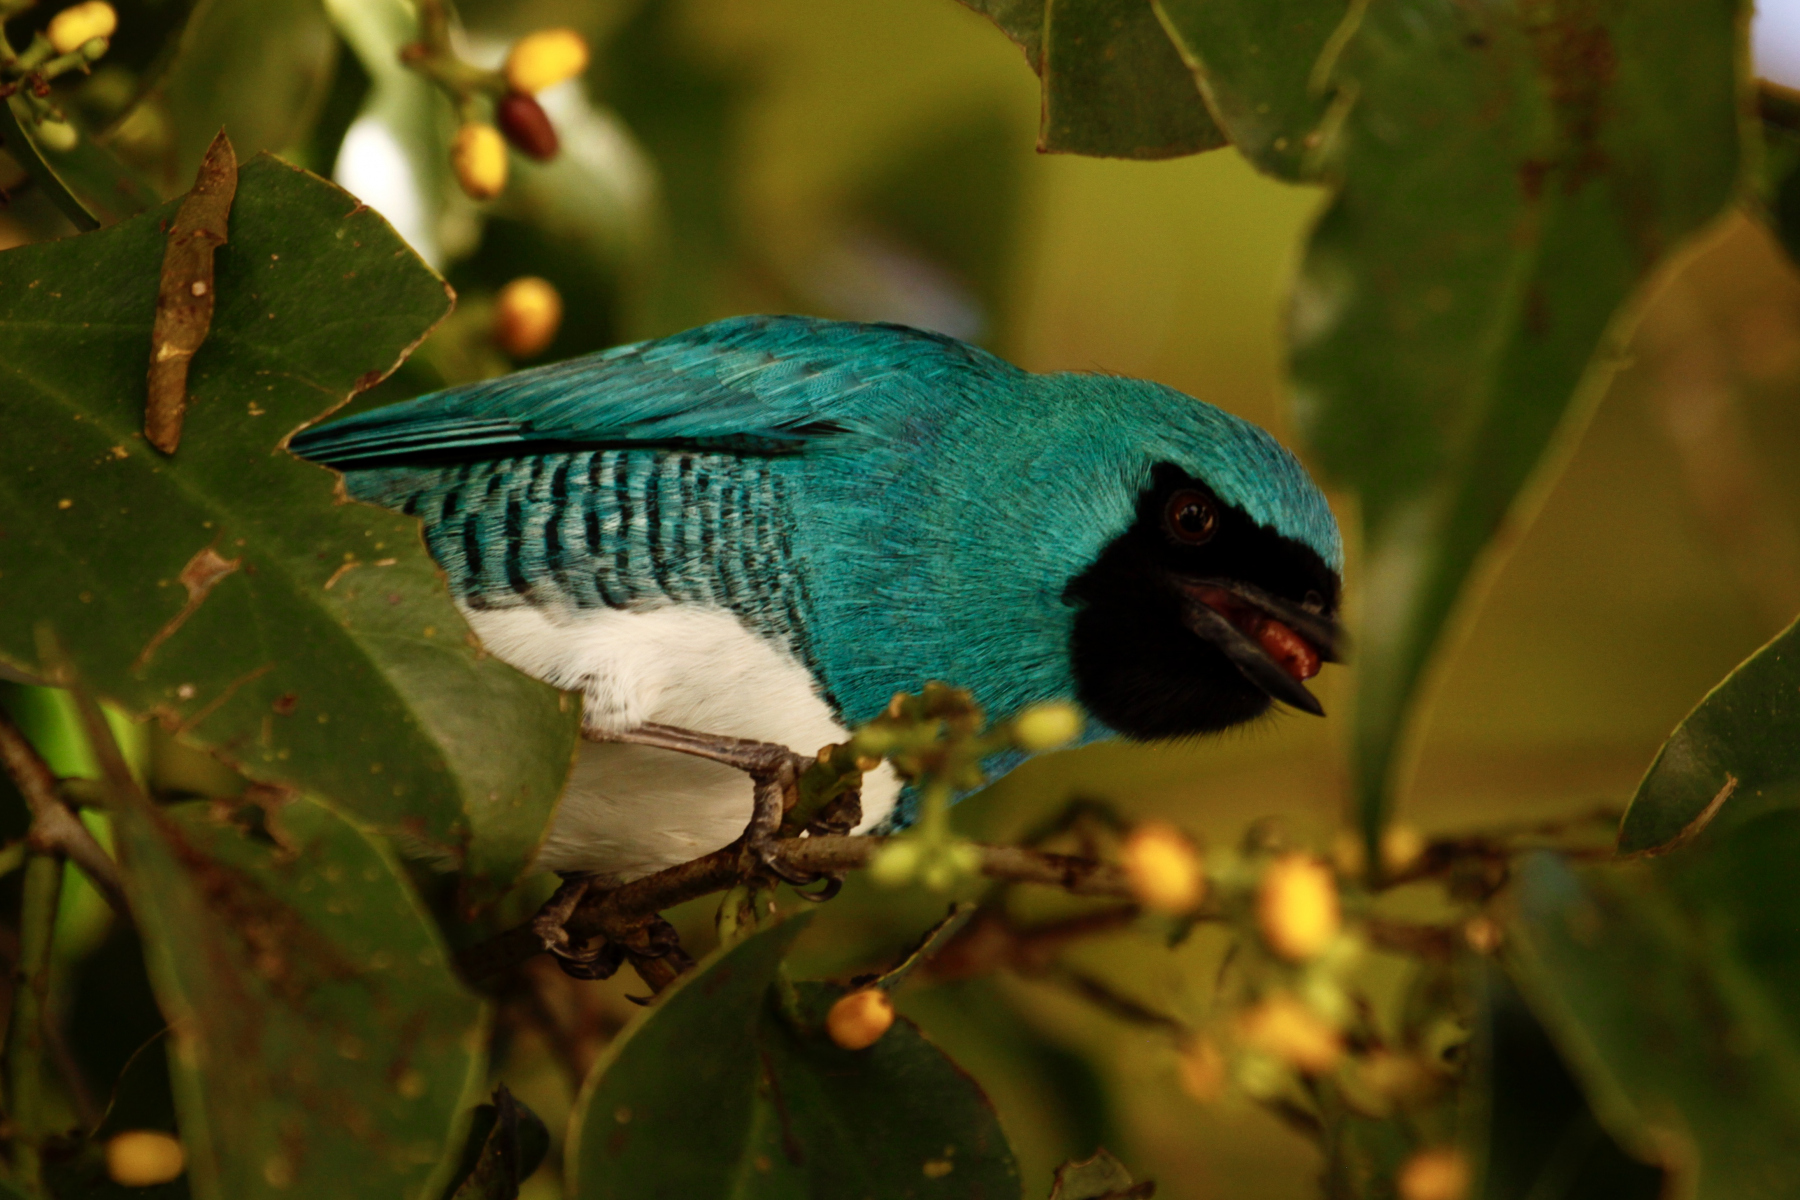 Swallow Tanager by Kate Winstanley